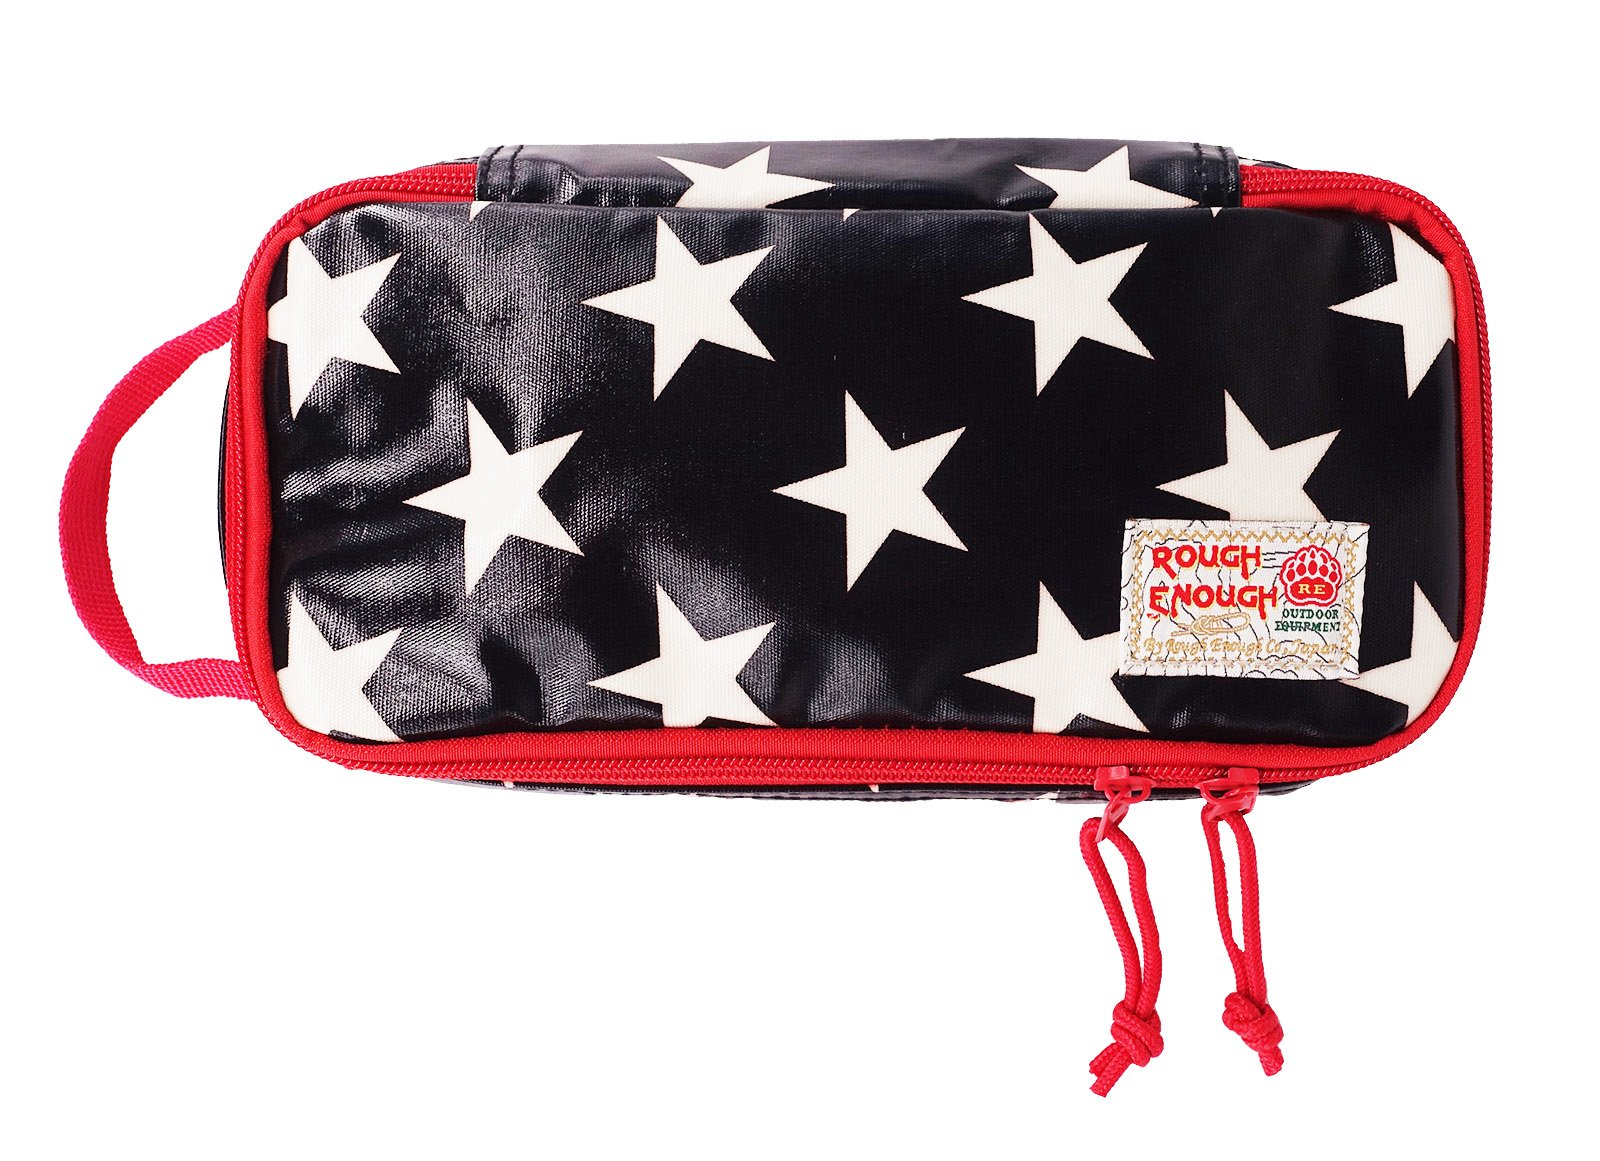 Rough Enough Heavy Duty Glossy Canvas Fashion Star Portable Travel Makeup Pouch Tool Carry Bag Pencil Case Organizer Storage with Zipper for Accessories Supplies of Macbook Cellphone Kids Girls Women